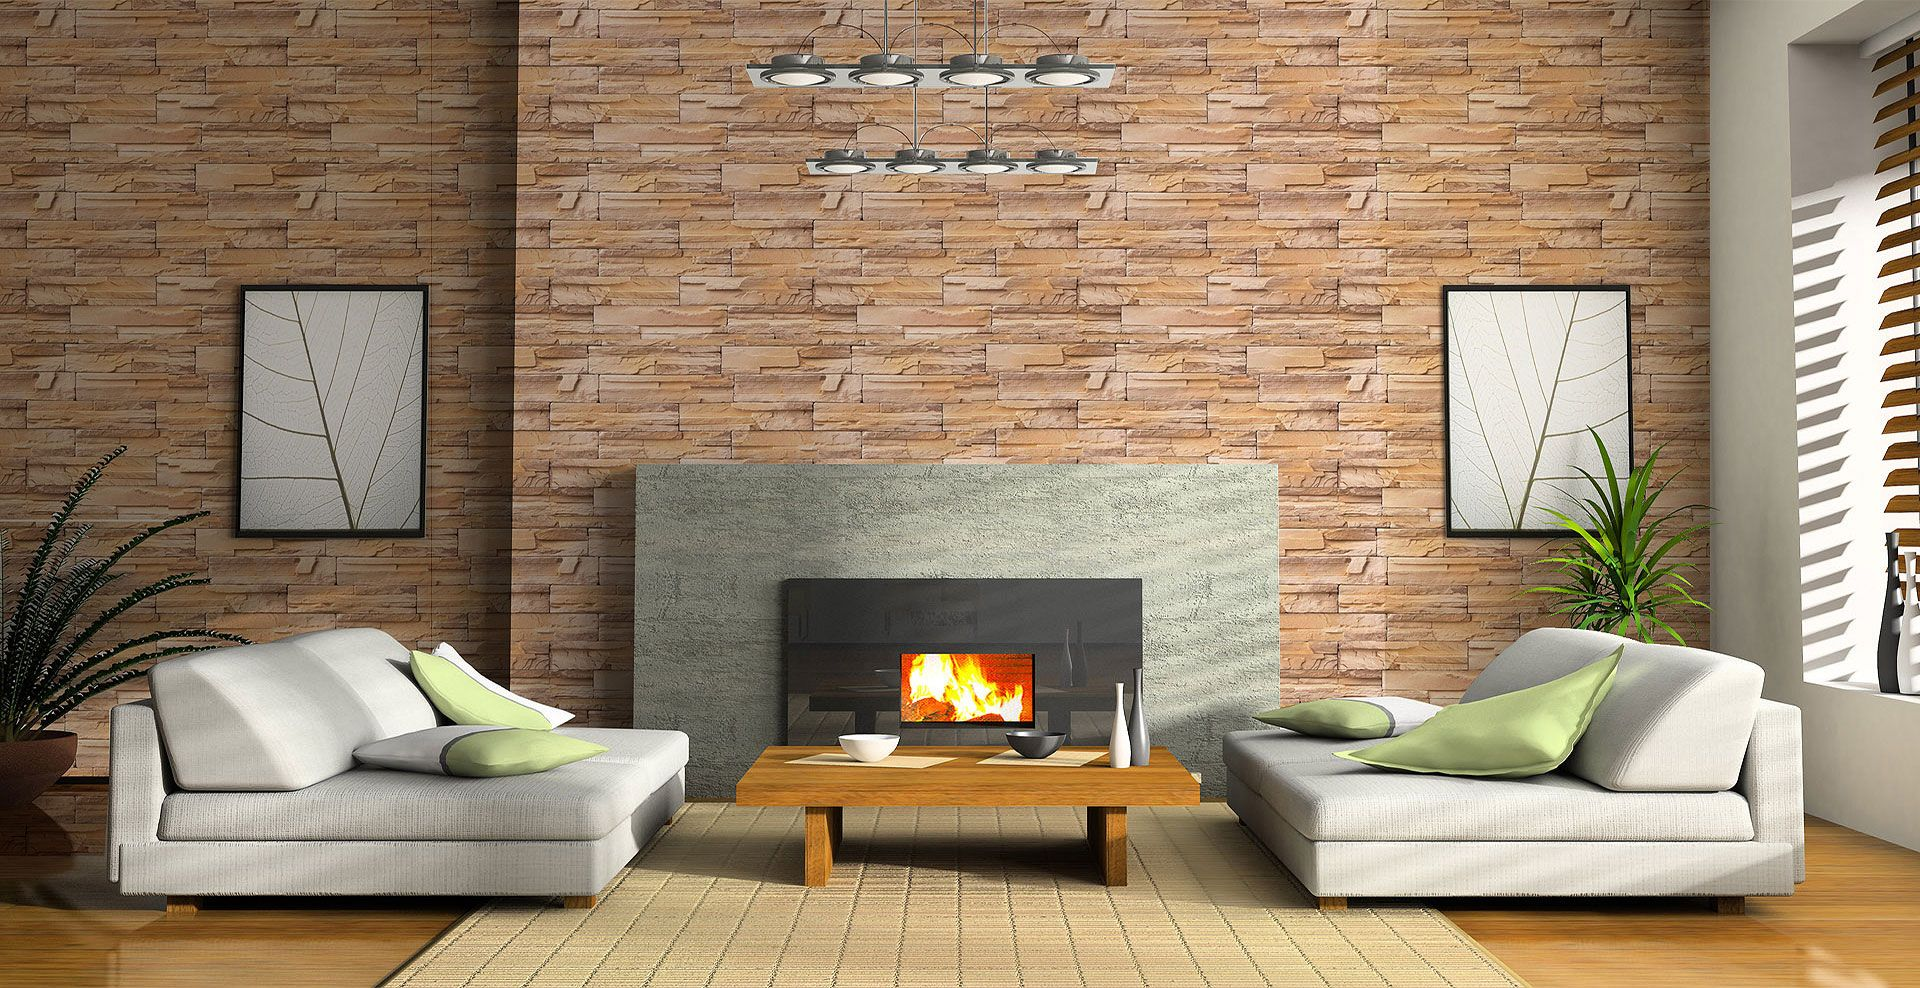 Decowall Is The New Self Adhesive Wallcovering It S Waterproof It Comes In Rolls Of 60cm Wide X 5m Long Diy Wallpaper Stone Wallpaper Peelable Wallpaper